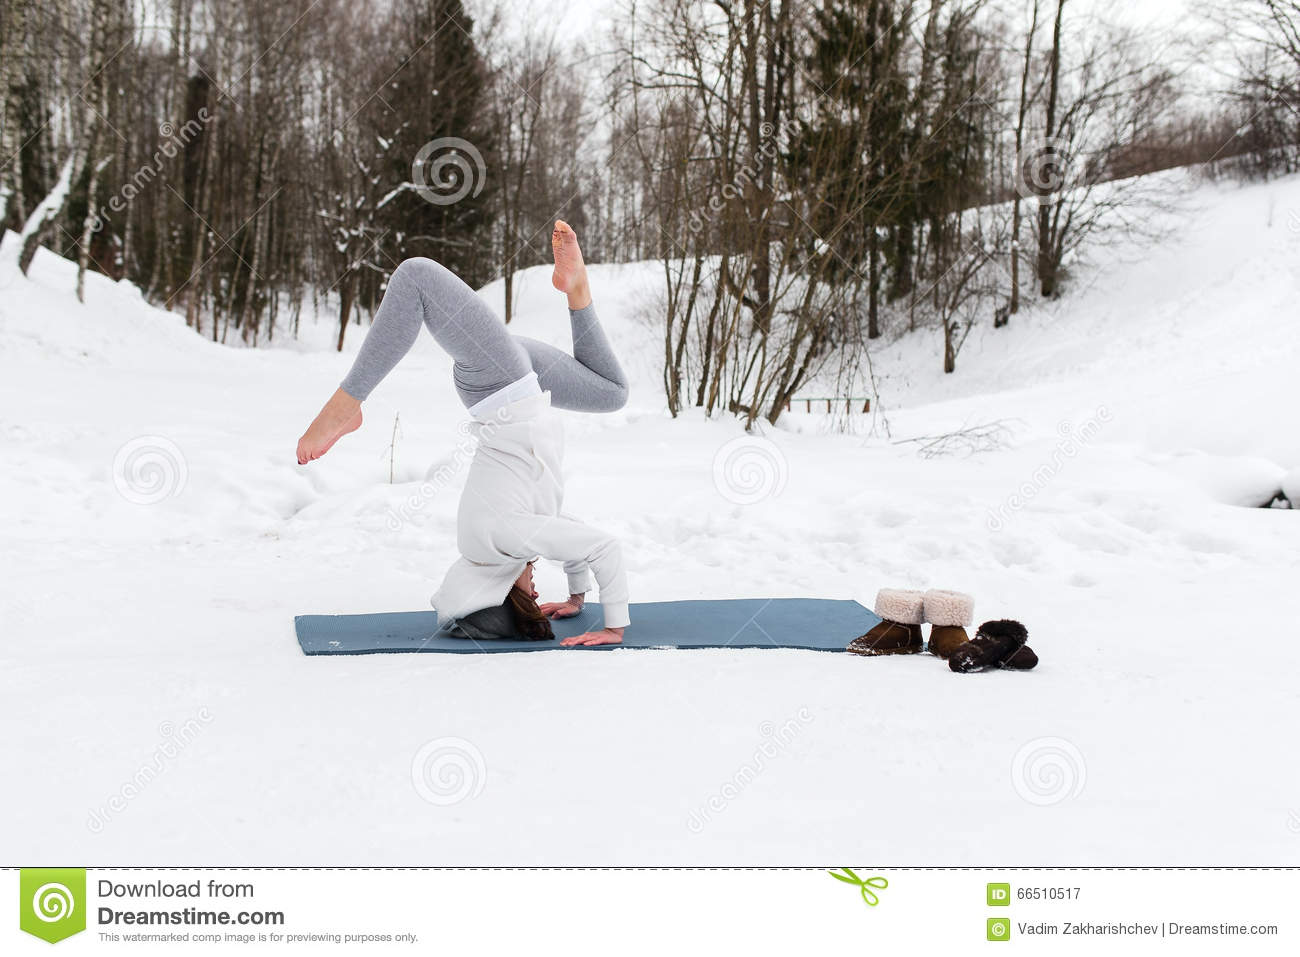 https://thumbs.dreamstime.com/z/winter-yoga-session-beautiful-place-young-athletic-woman-doing-woods-girl-engaged-fitness-park-66510517.jpg